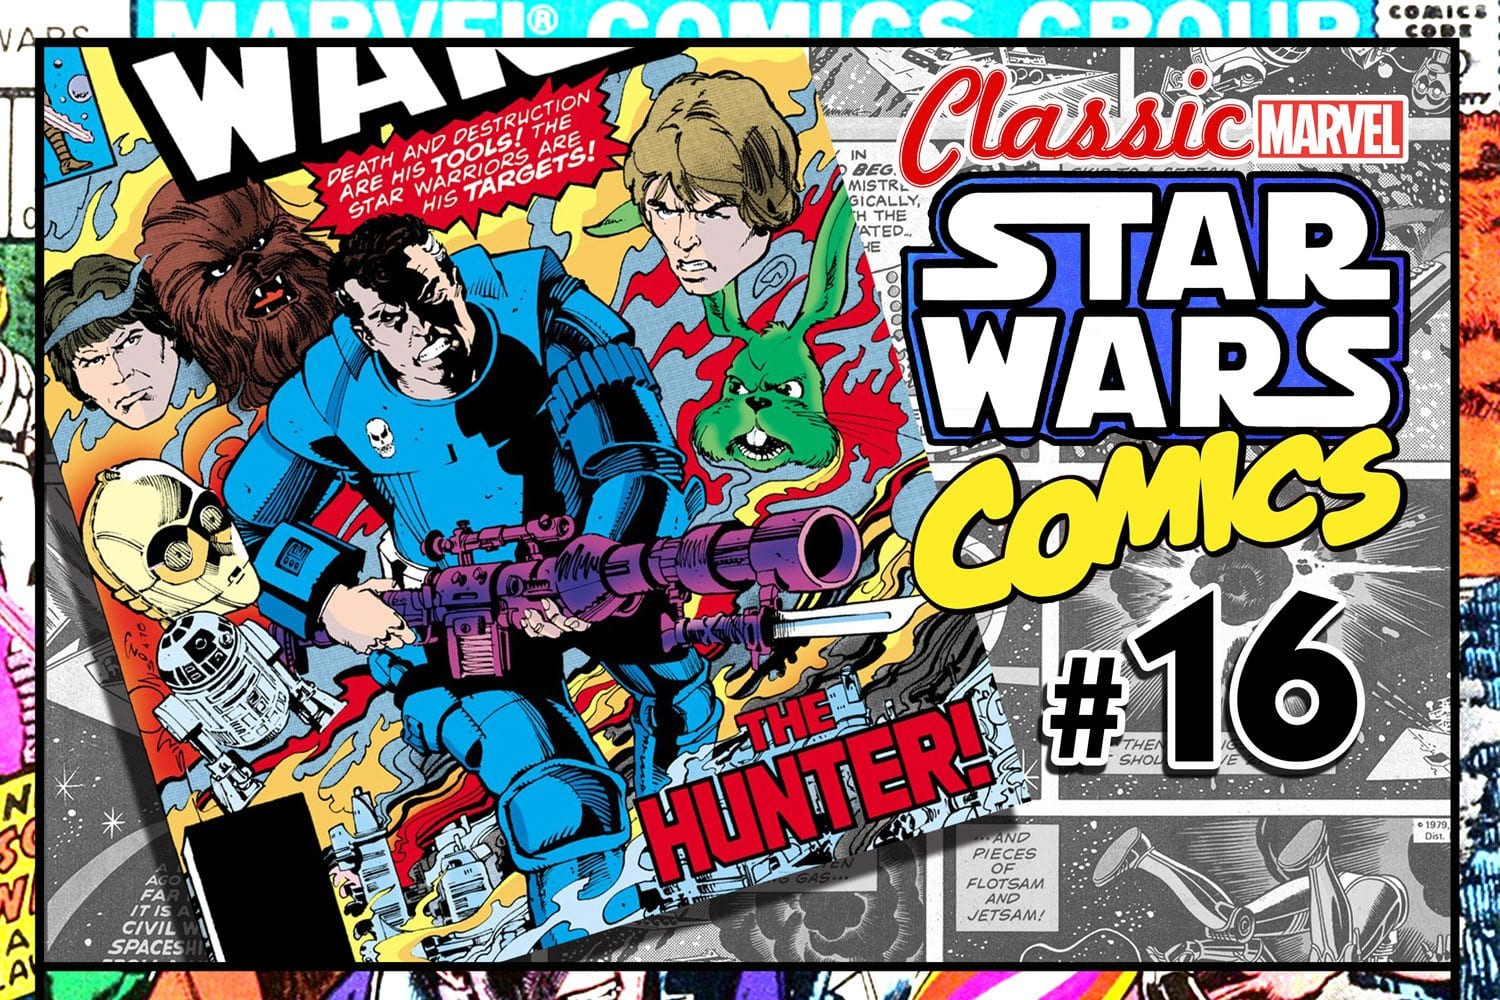 Classic Marvel Star Wars Comics #16: The Hunter